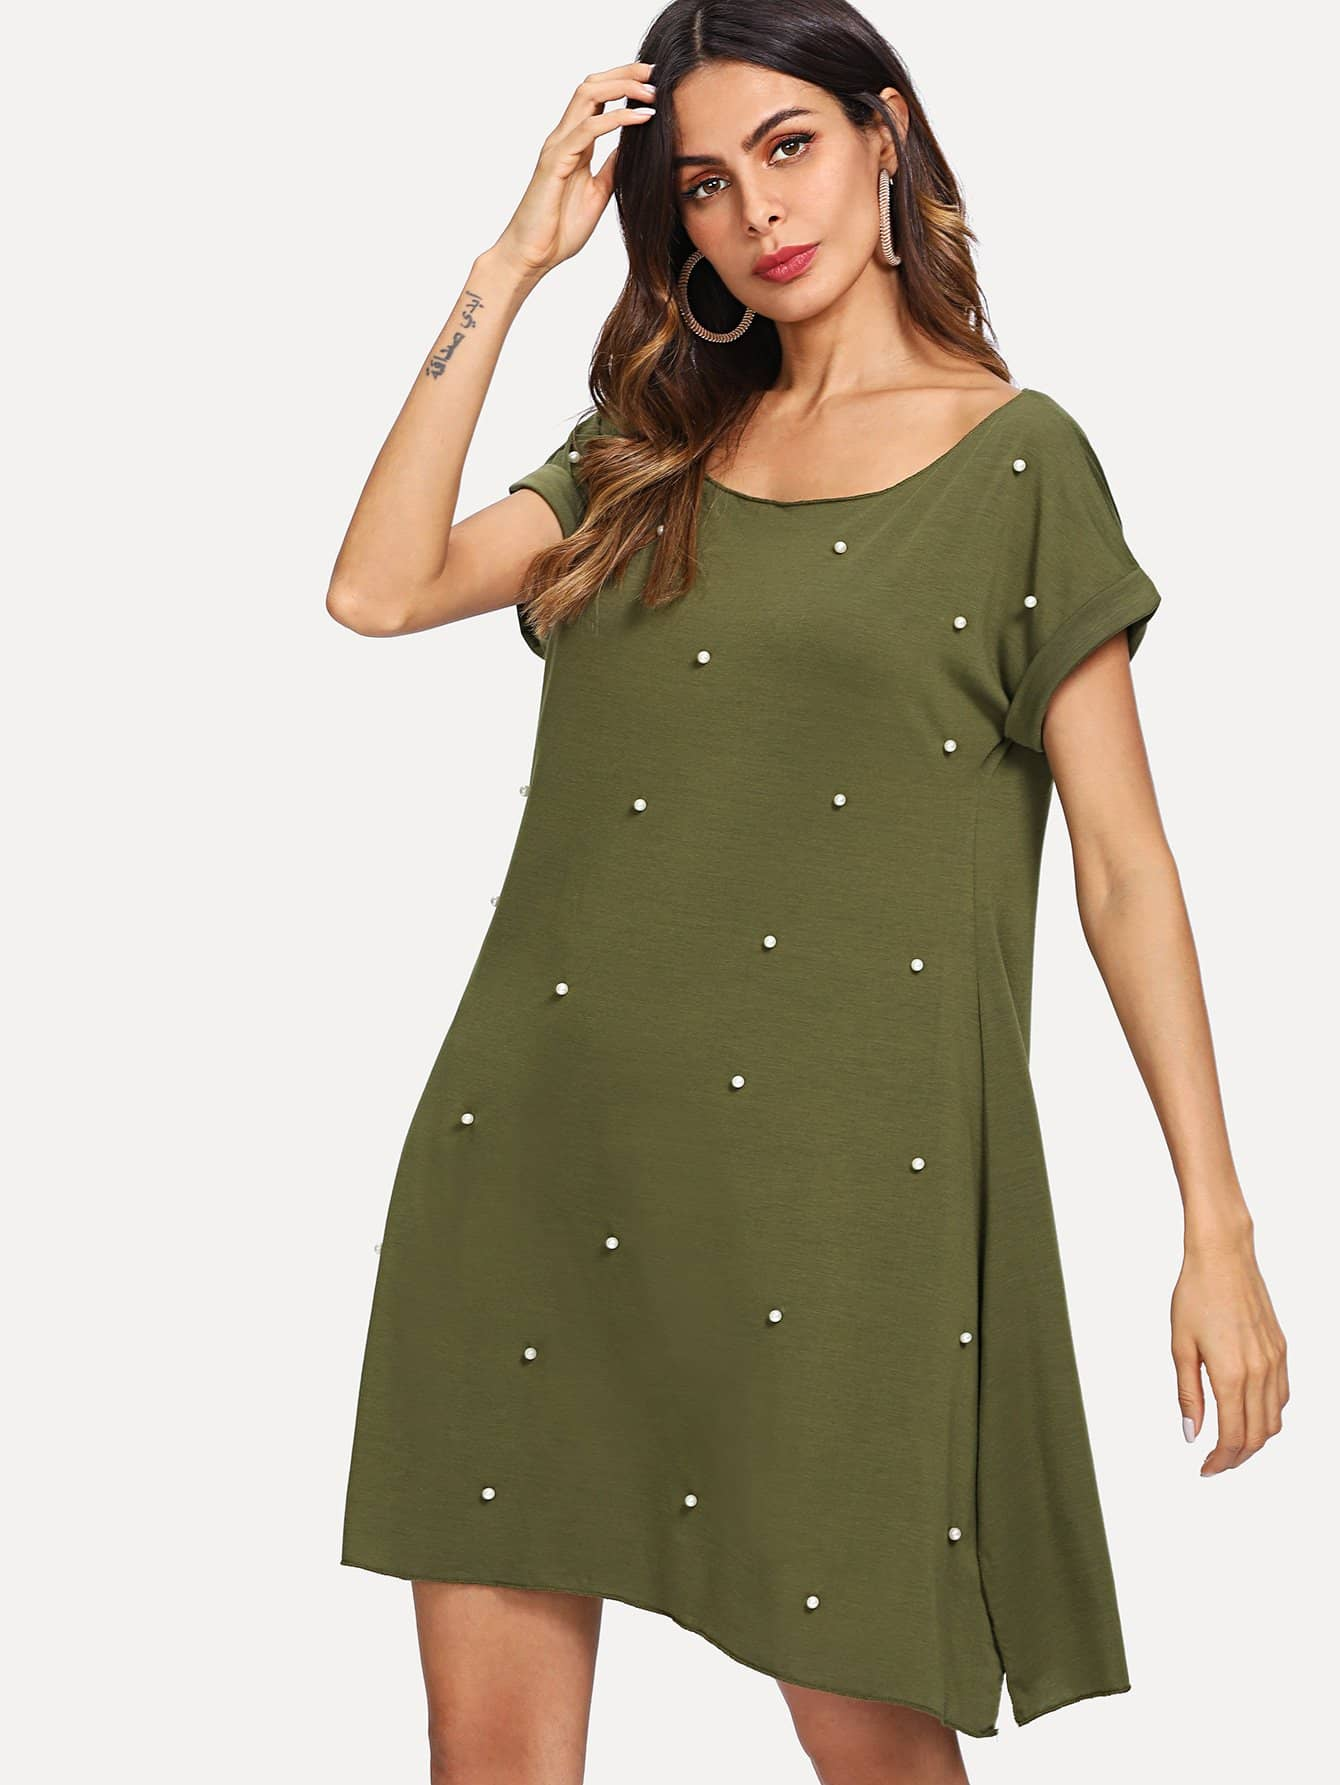 Pearl Beading Tee Dress pearl beading fishnet dress without lingerie set